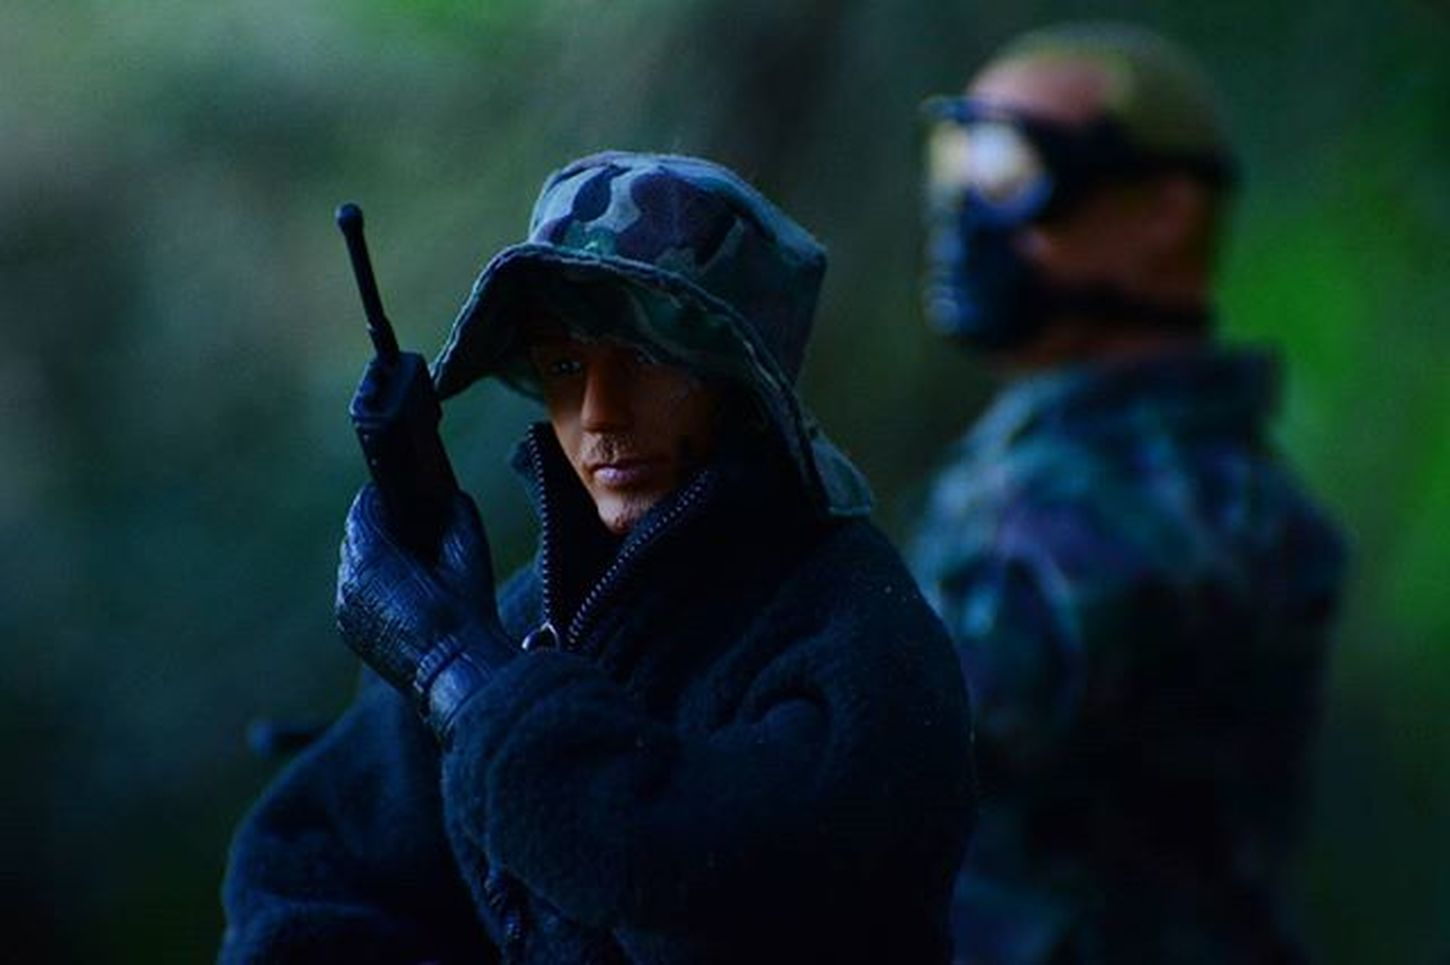 """""""We've arrived at the drop point, over"""" Toyonlocation Toy_nerds Sealteam Toycrewbuddies Toyoutsiders Toydiscovery Camoflauge Toygroup_alliance Toystagram Toystory Toypictures Toyboners Portrait Worldpeacekeepers Ig_worldclub Toyphotography Figurine  Actionfigure Figurine  Collectable Arizona Agameoftones Arizona_artists Portrait Peacekeepers teamelite military"""